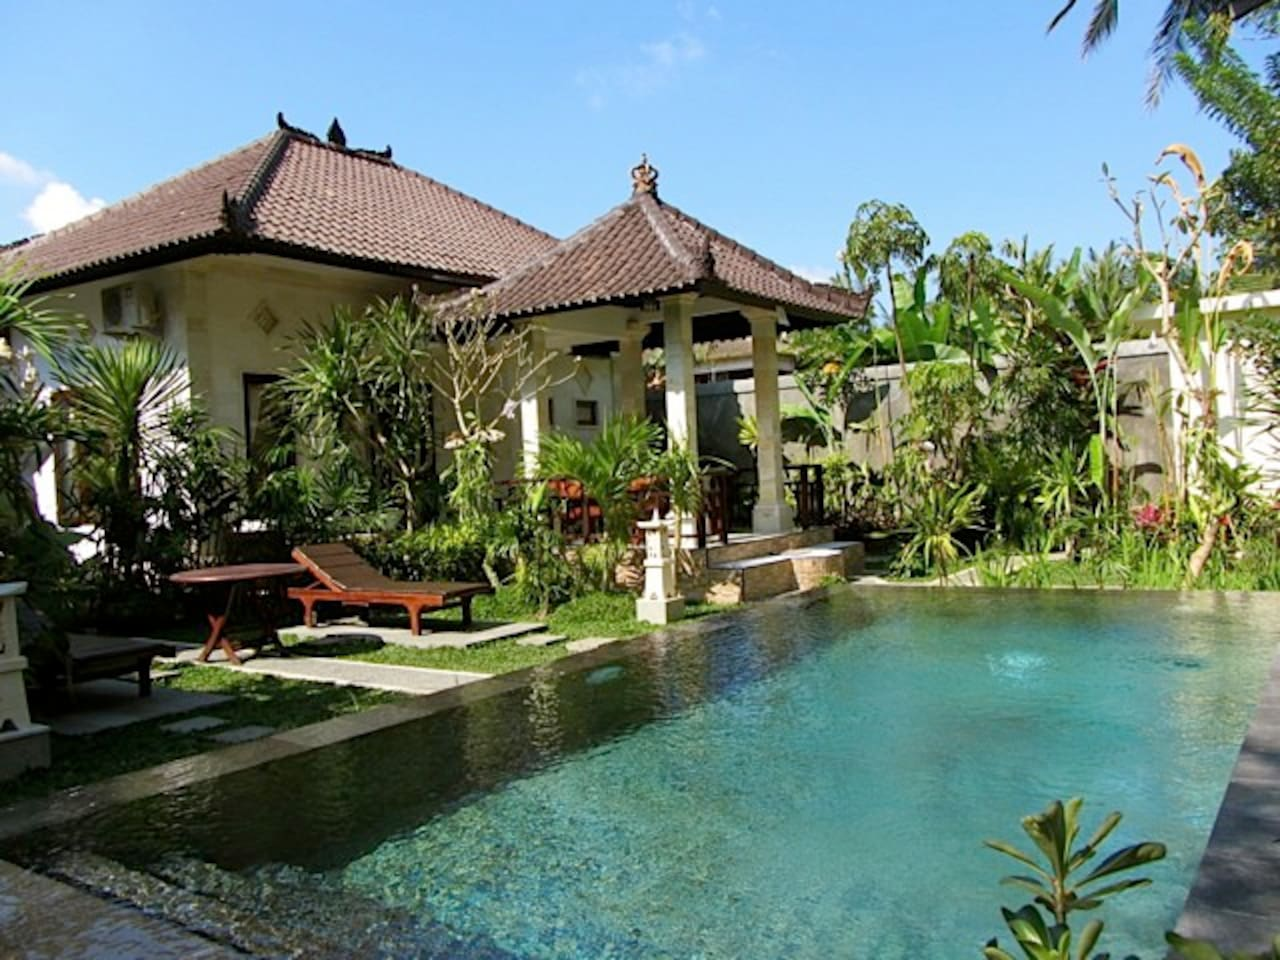 Private 1 bedroom villa in Penestanan area of Ubud - the cultural capital of Bali.